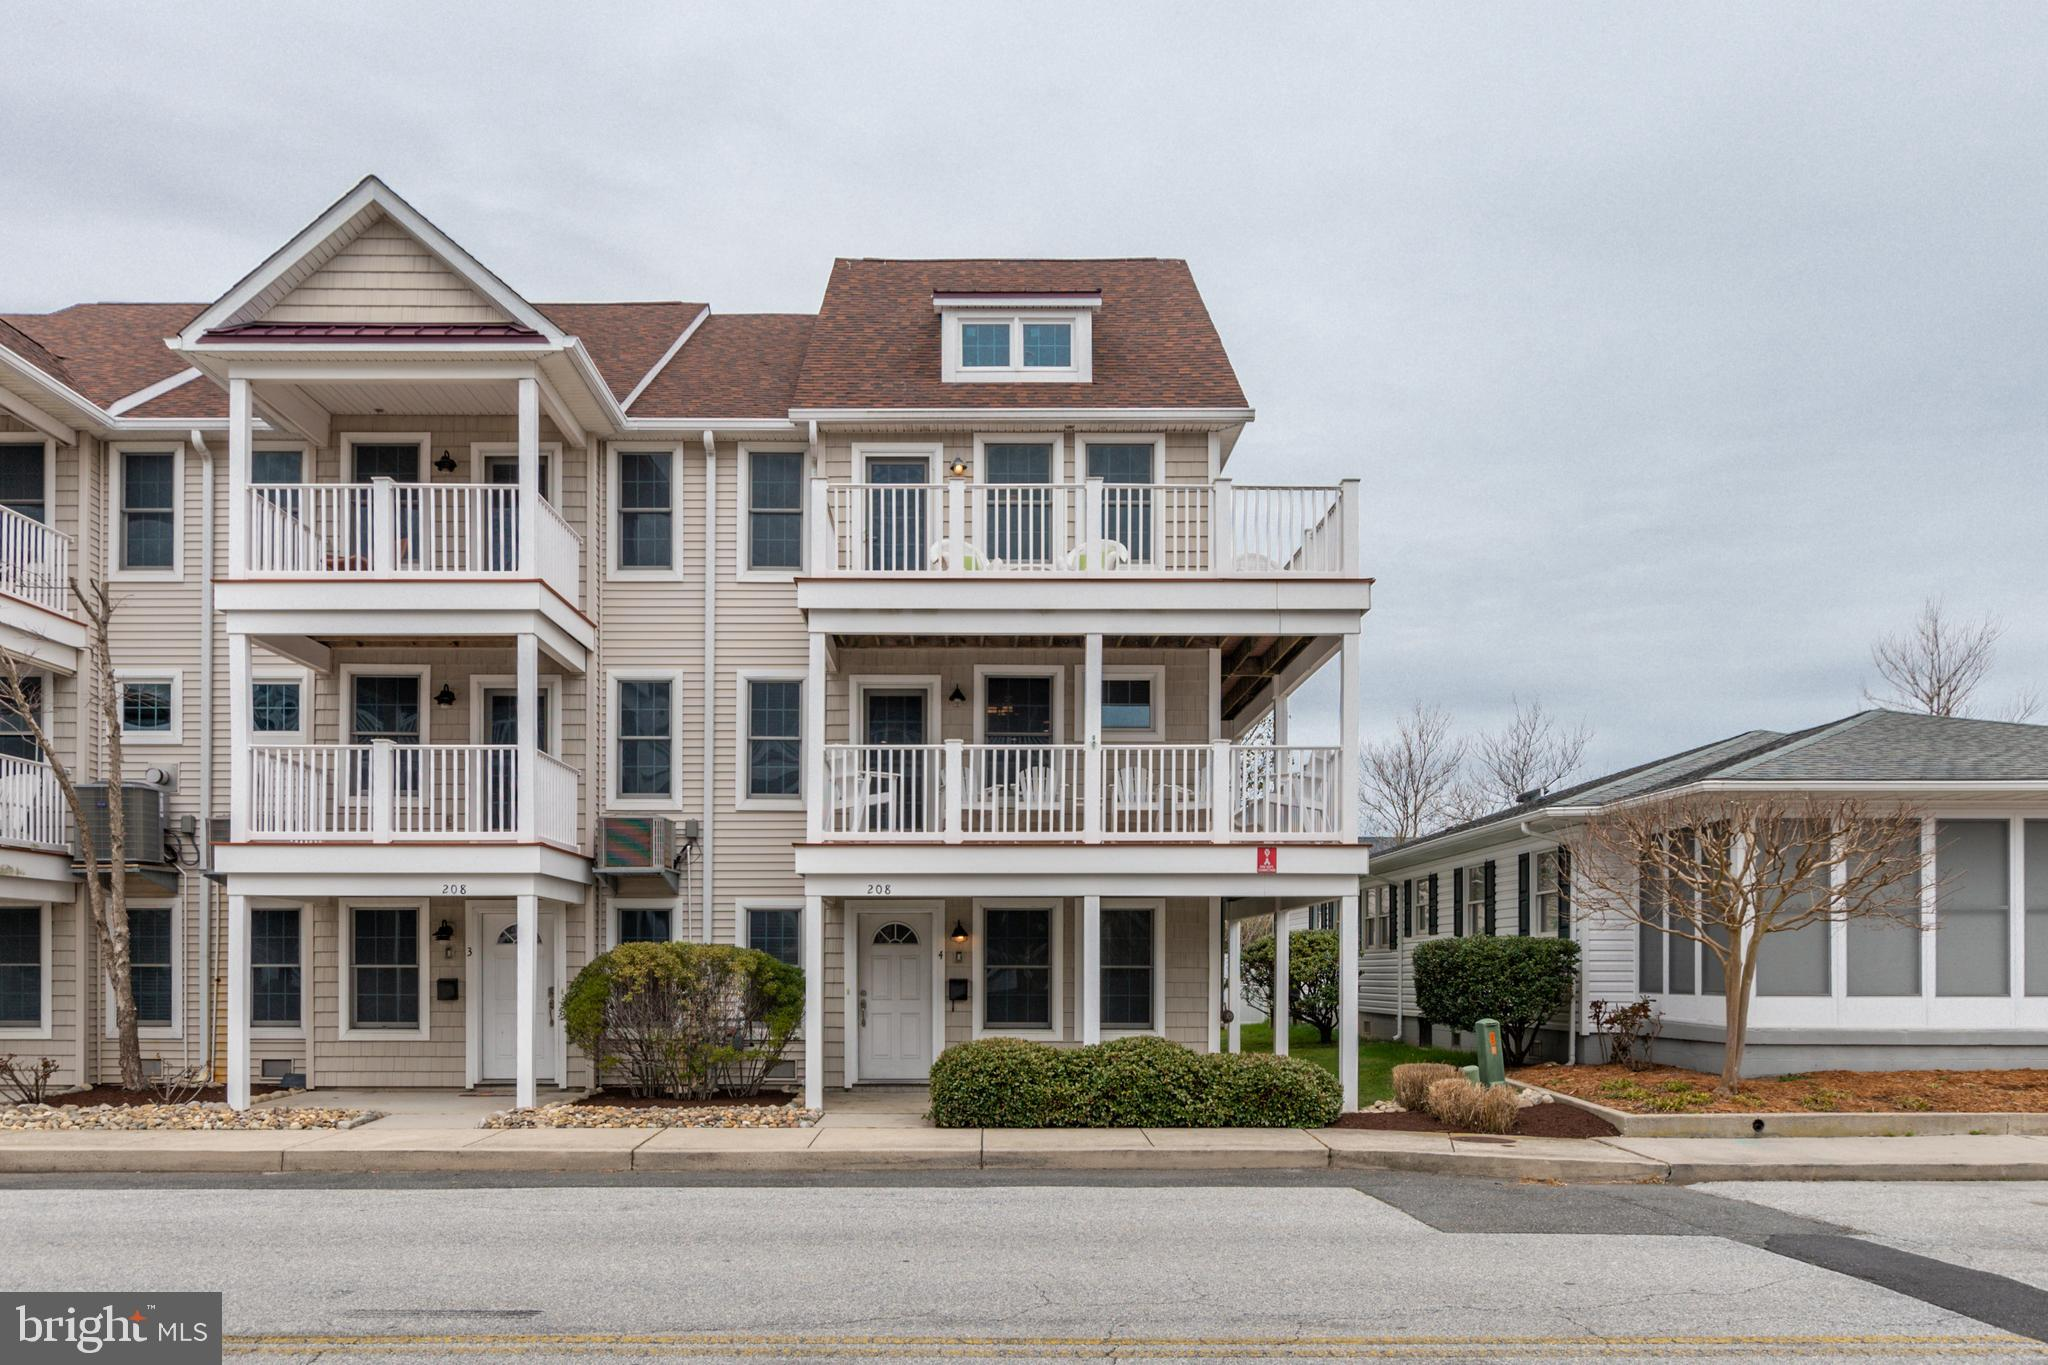 This 3 bedroom 2.5 bath 1700 sq. ft. end unit townhouse is a must see. There is an additional room that can be used as a 4th bedroom or a den. Fully furnished, freshly painted, hardwood floors, gourmet kitchen, gas fireplace, laundry room, large 2 car garage, tons of outdoor living space with bay views and just steps to the beach and Boardwalk. Great location on 7th street and Saint Louis Avenue. Enjoy two free fishing piers, as well as the Downtown Recreation Complex along the bay where you find a ballfield, playground, basketball courts, tennis courts, and the Ocean Bowl Skate Park. Restaurants, shopping, amusements, and the White Marlin Open fishing tournament are all within a short distance.